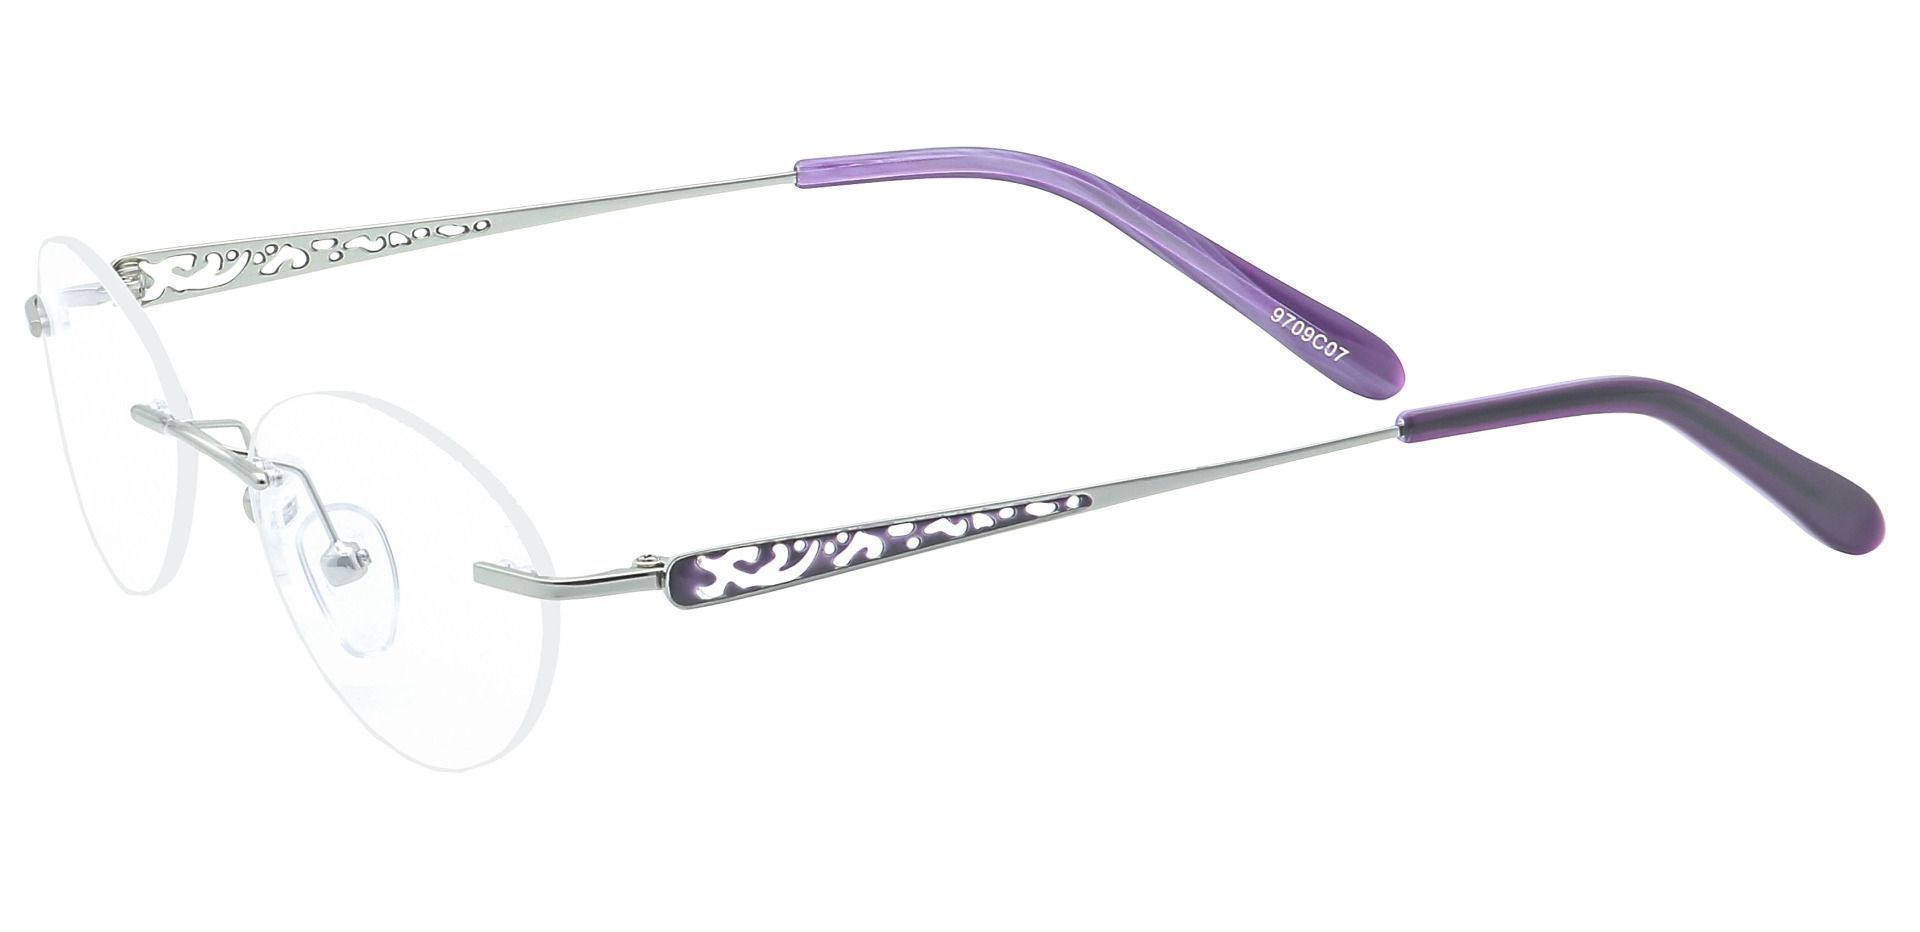 Christina Rimless Non-Rx Glasses - The Frame Is Silver And Purple